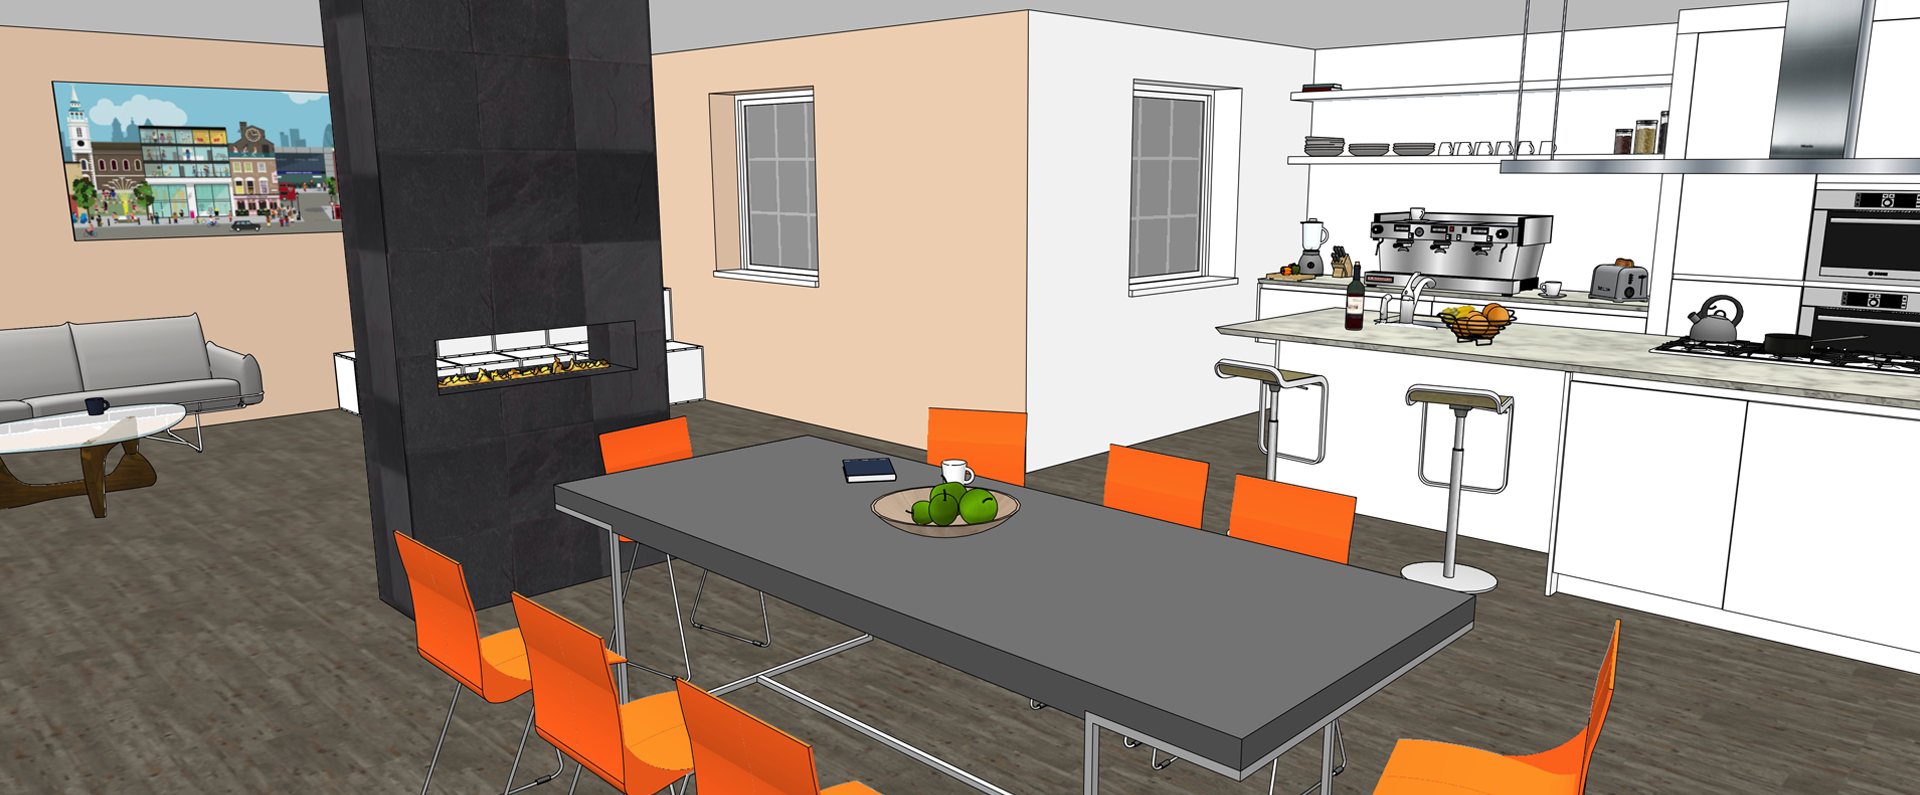 For Kitchen Sketchup For Kitchen Bath Interior Design Sketchup